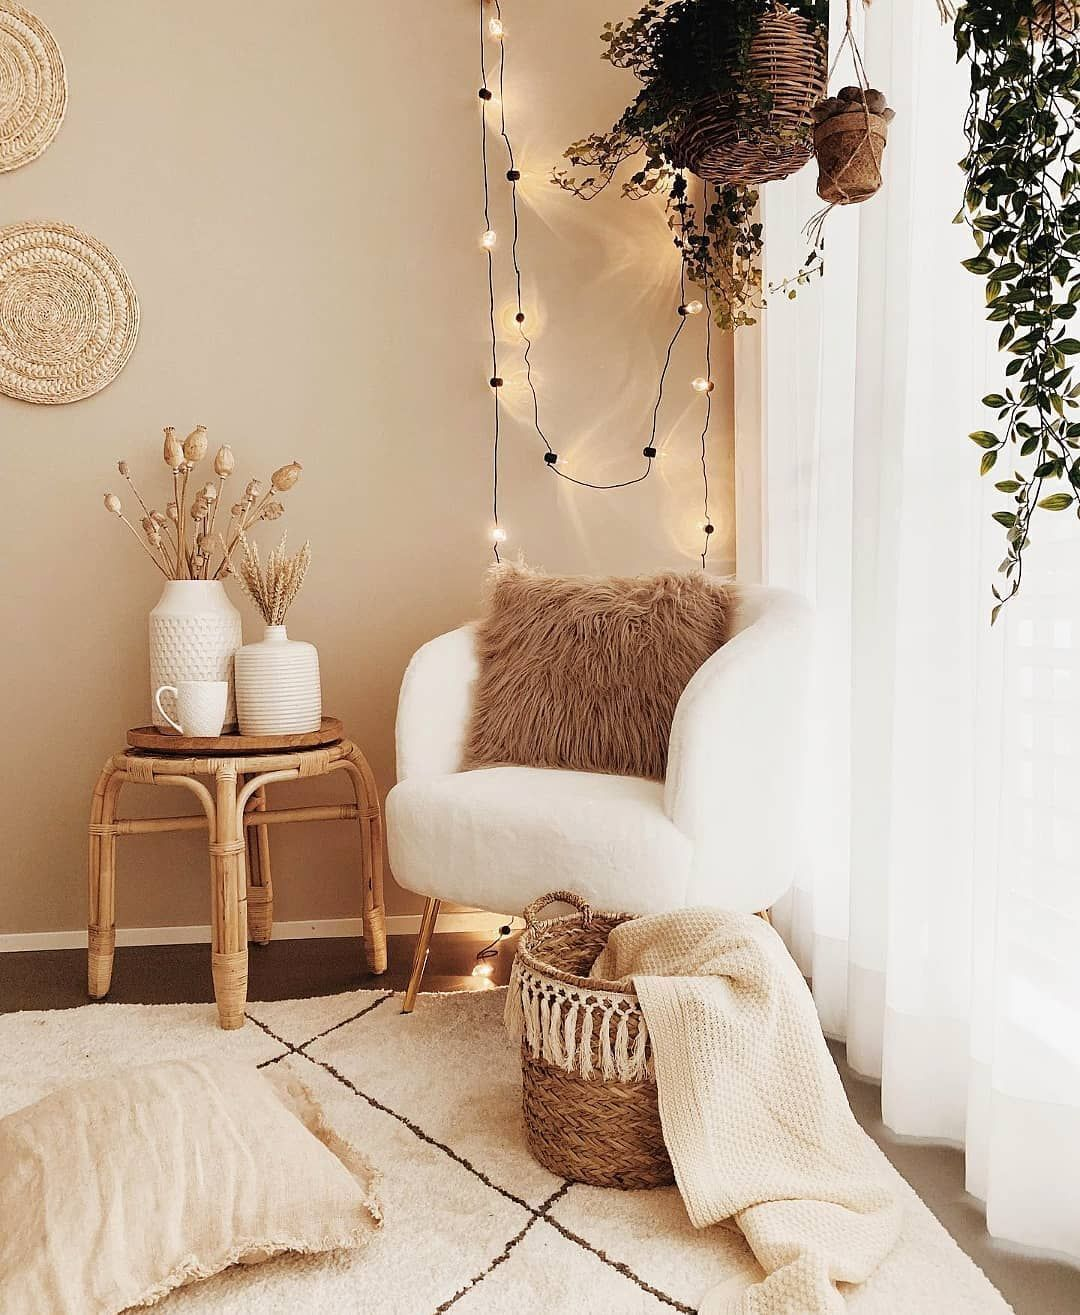 5 tips you should follow to decorate your life successfully -  5 tips to follow to successfully decorate your life –  #follow #Decorate #the #Successful #their  - #Decorate #diydecortutorials #Follow #homedecorwall #homediytips #kitchenideasdiy #Life #Successfully #Tips